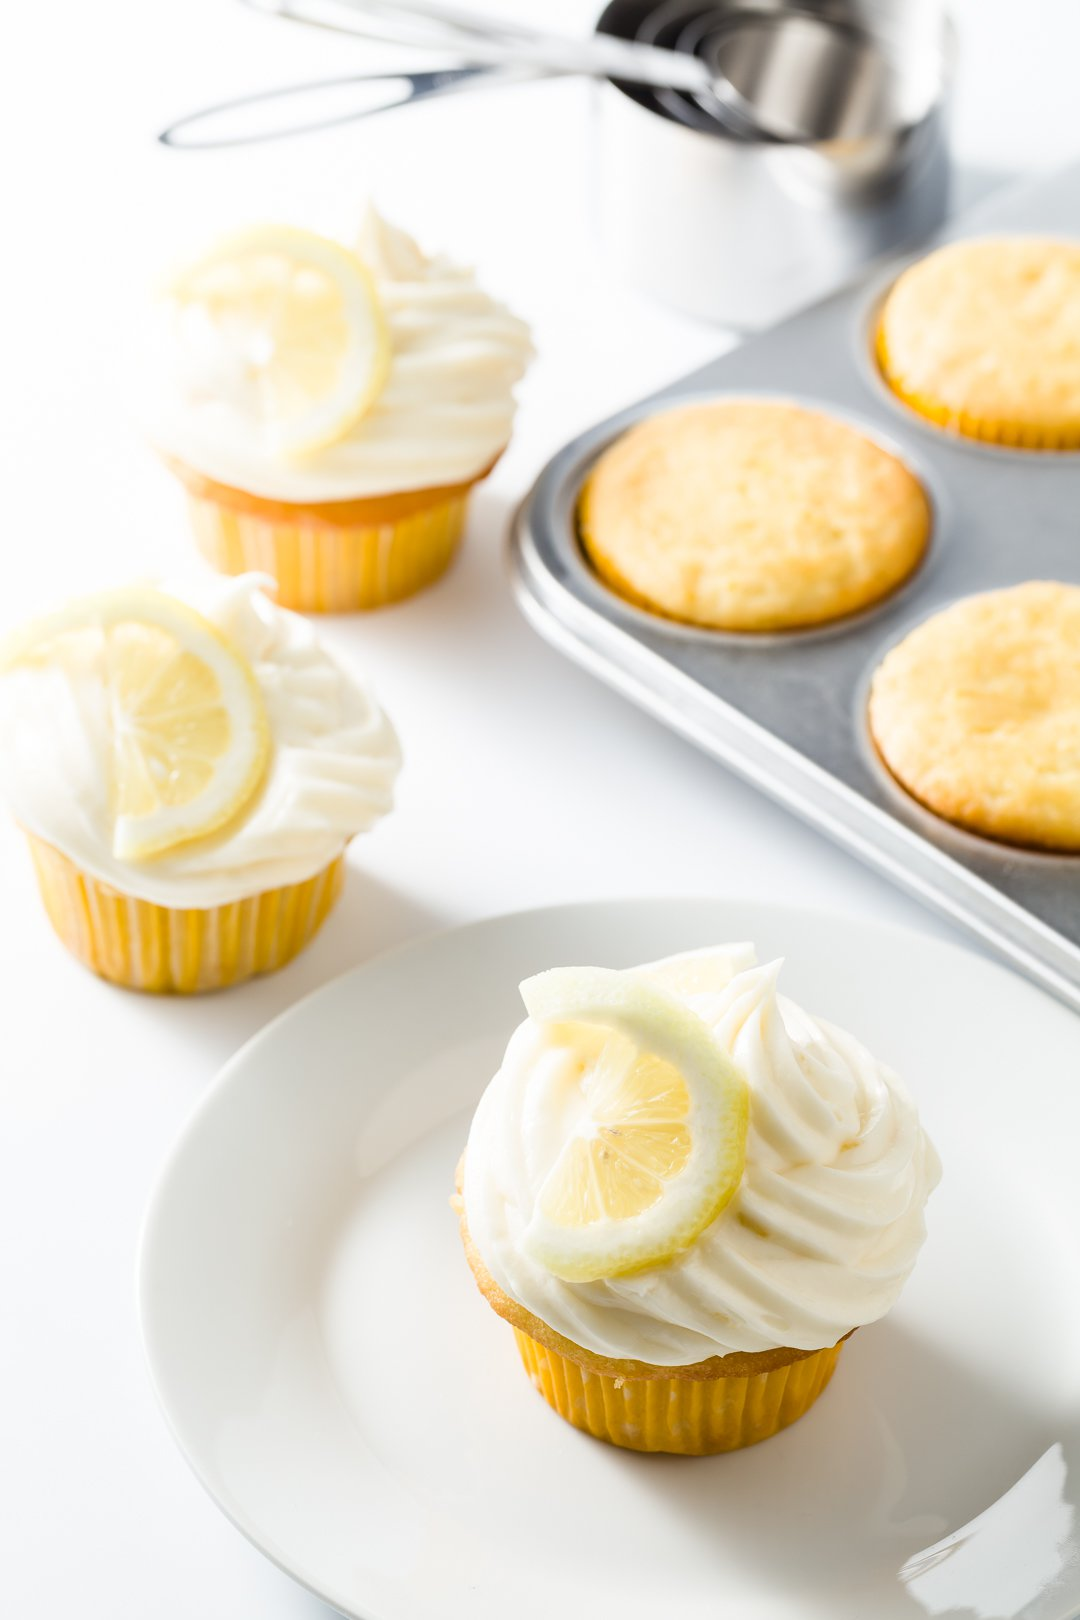 Lemon cream cheese frosting on lemon cupcakes